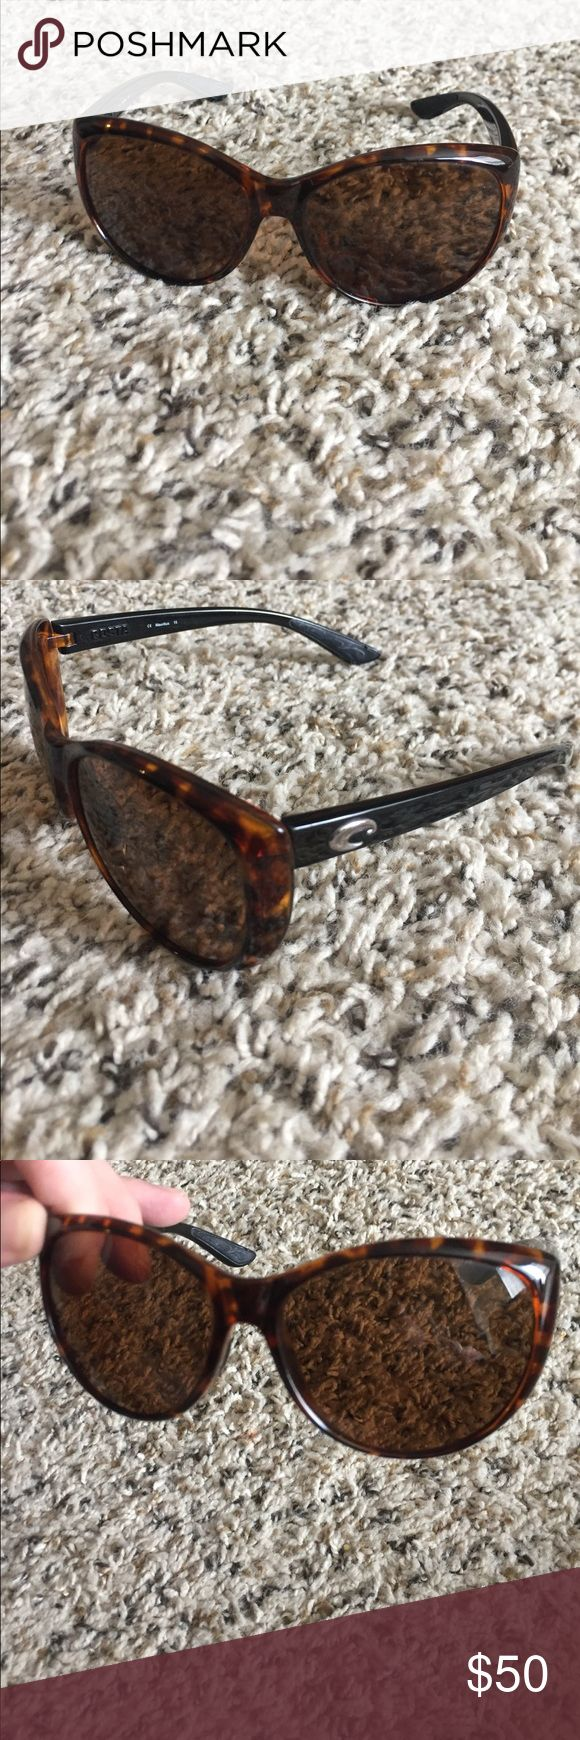 Genuine Costa Del Mar sunglasses Super cute tortoise shell La Mar Costa sunglasses. In near perfect condition. Tiny, minor scratches on lenses, but nothing major. Great pair of sunglasses, just don't wear them much! Costa Del Mar Accessories Sunglasses #NothingButDresses